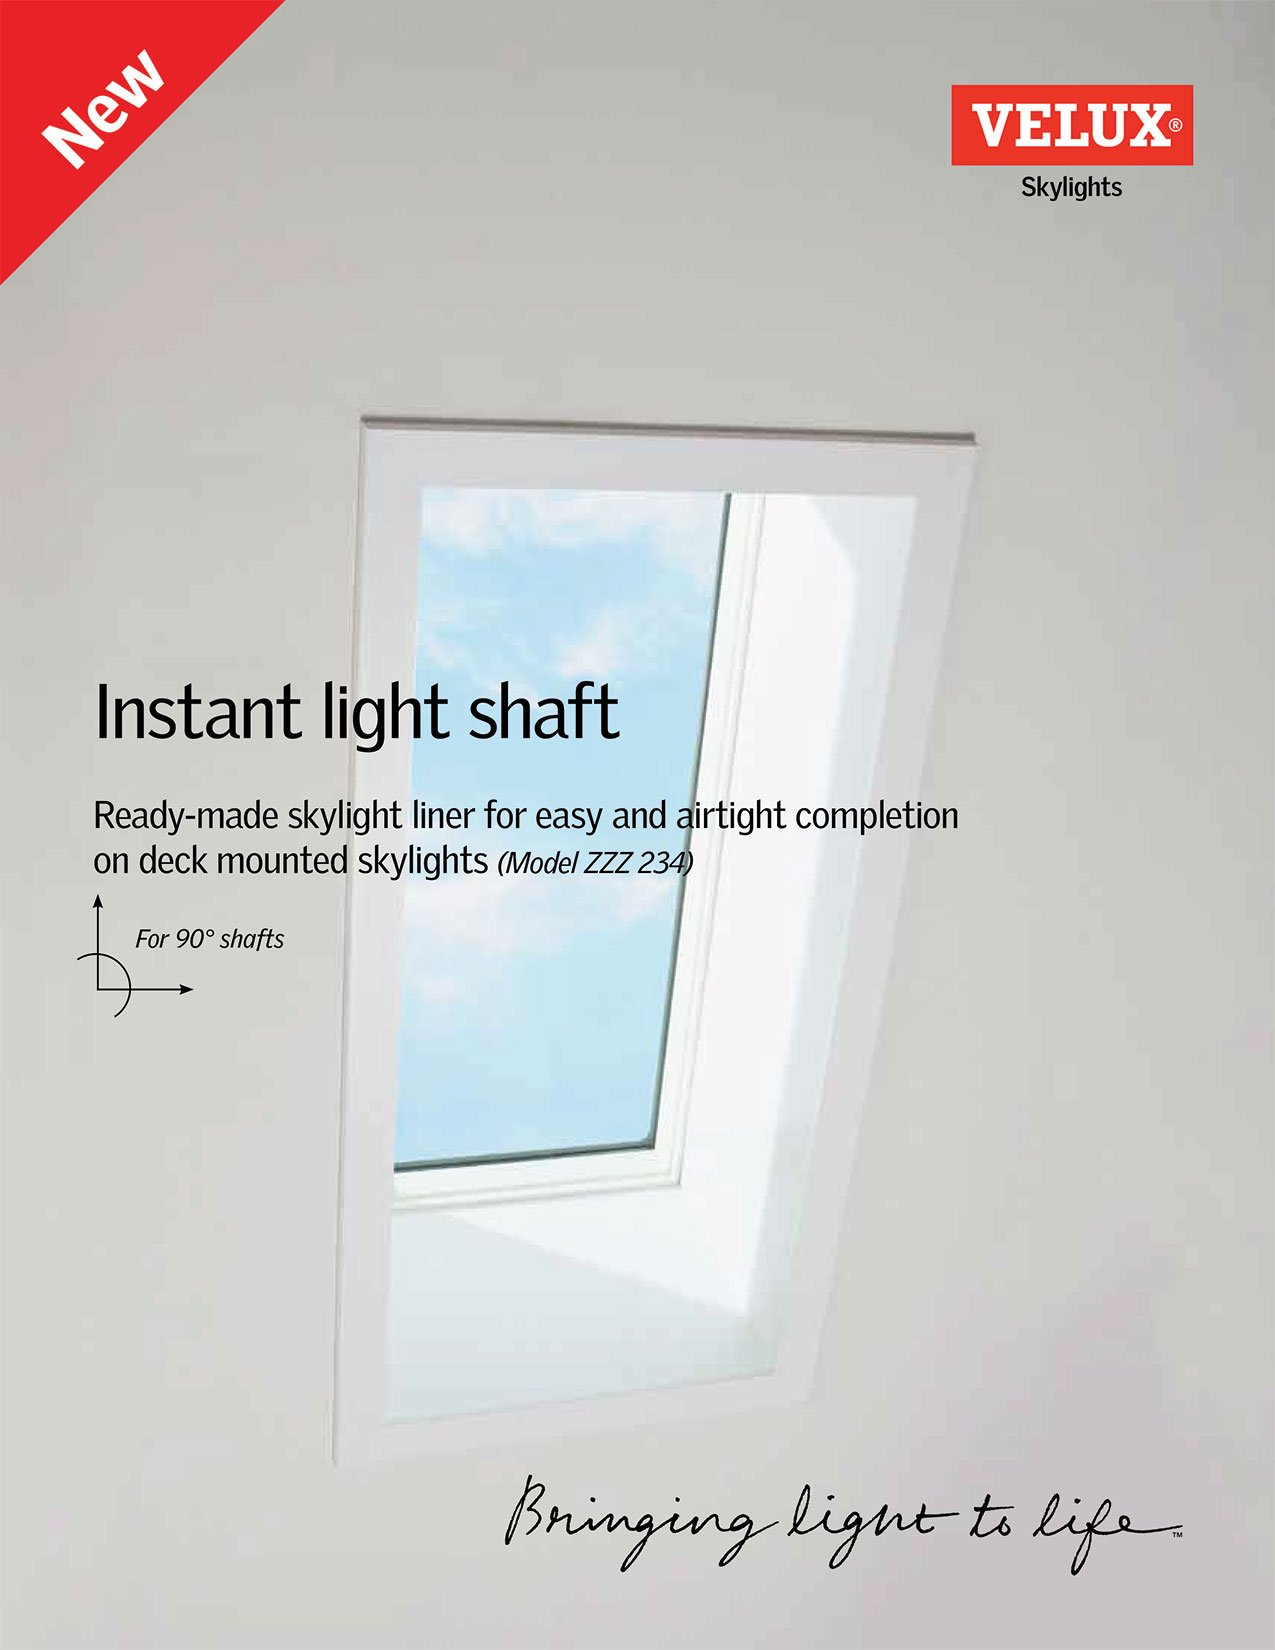 Flyer on instant light shaft